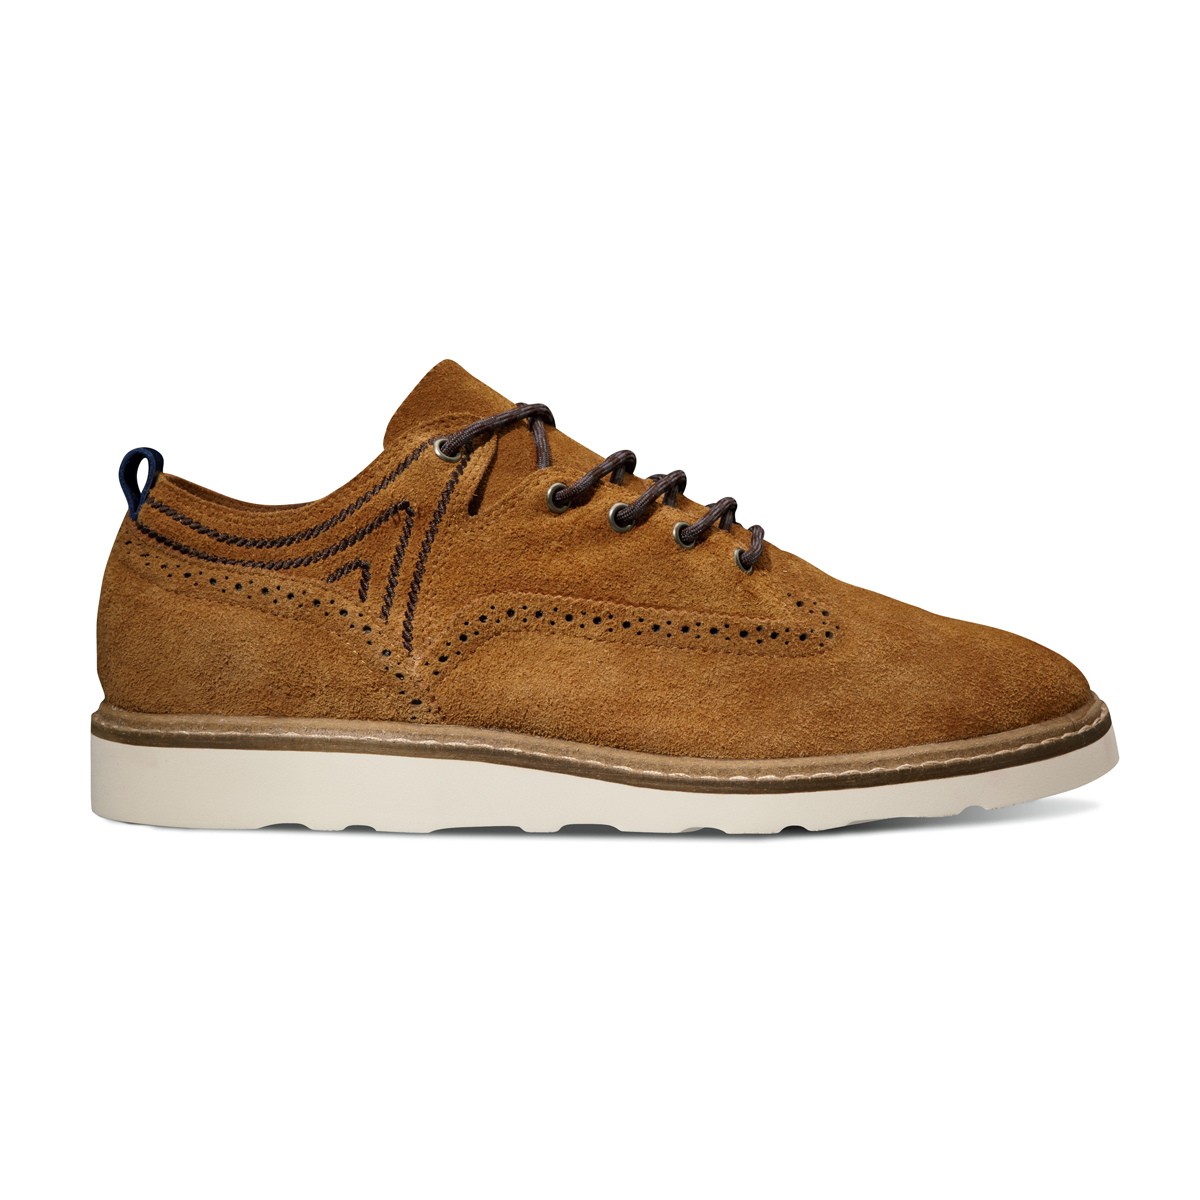 Vault-by-Vans-x-Taka-Hayashi_TH-008-LX_Suede_Glazed-Ginger_2013